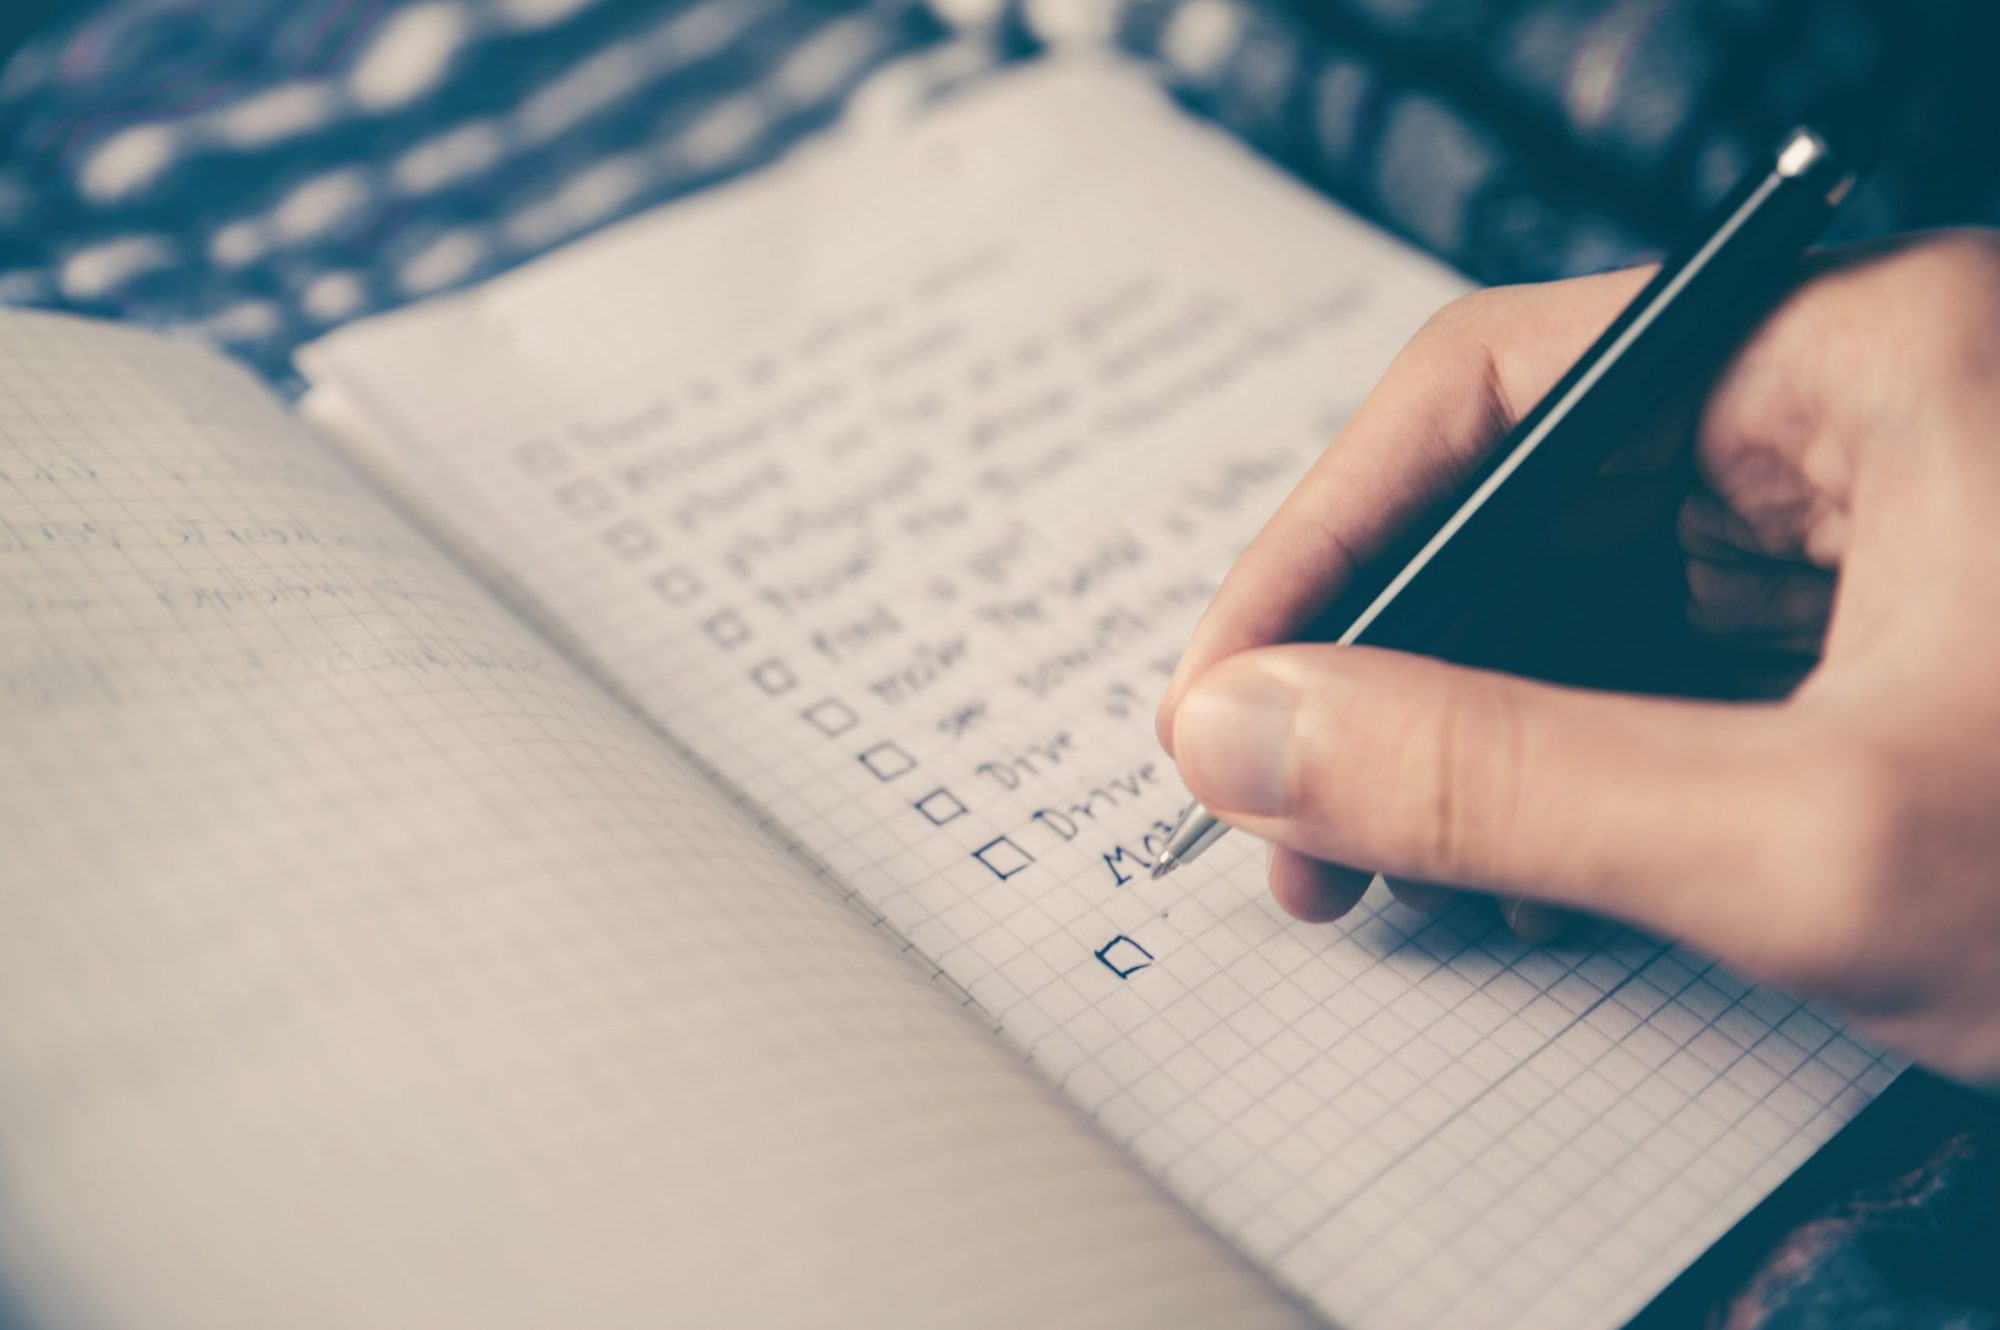 writing in a notebook plm training